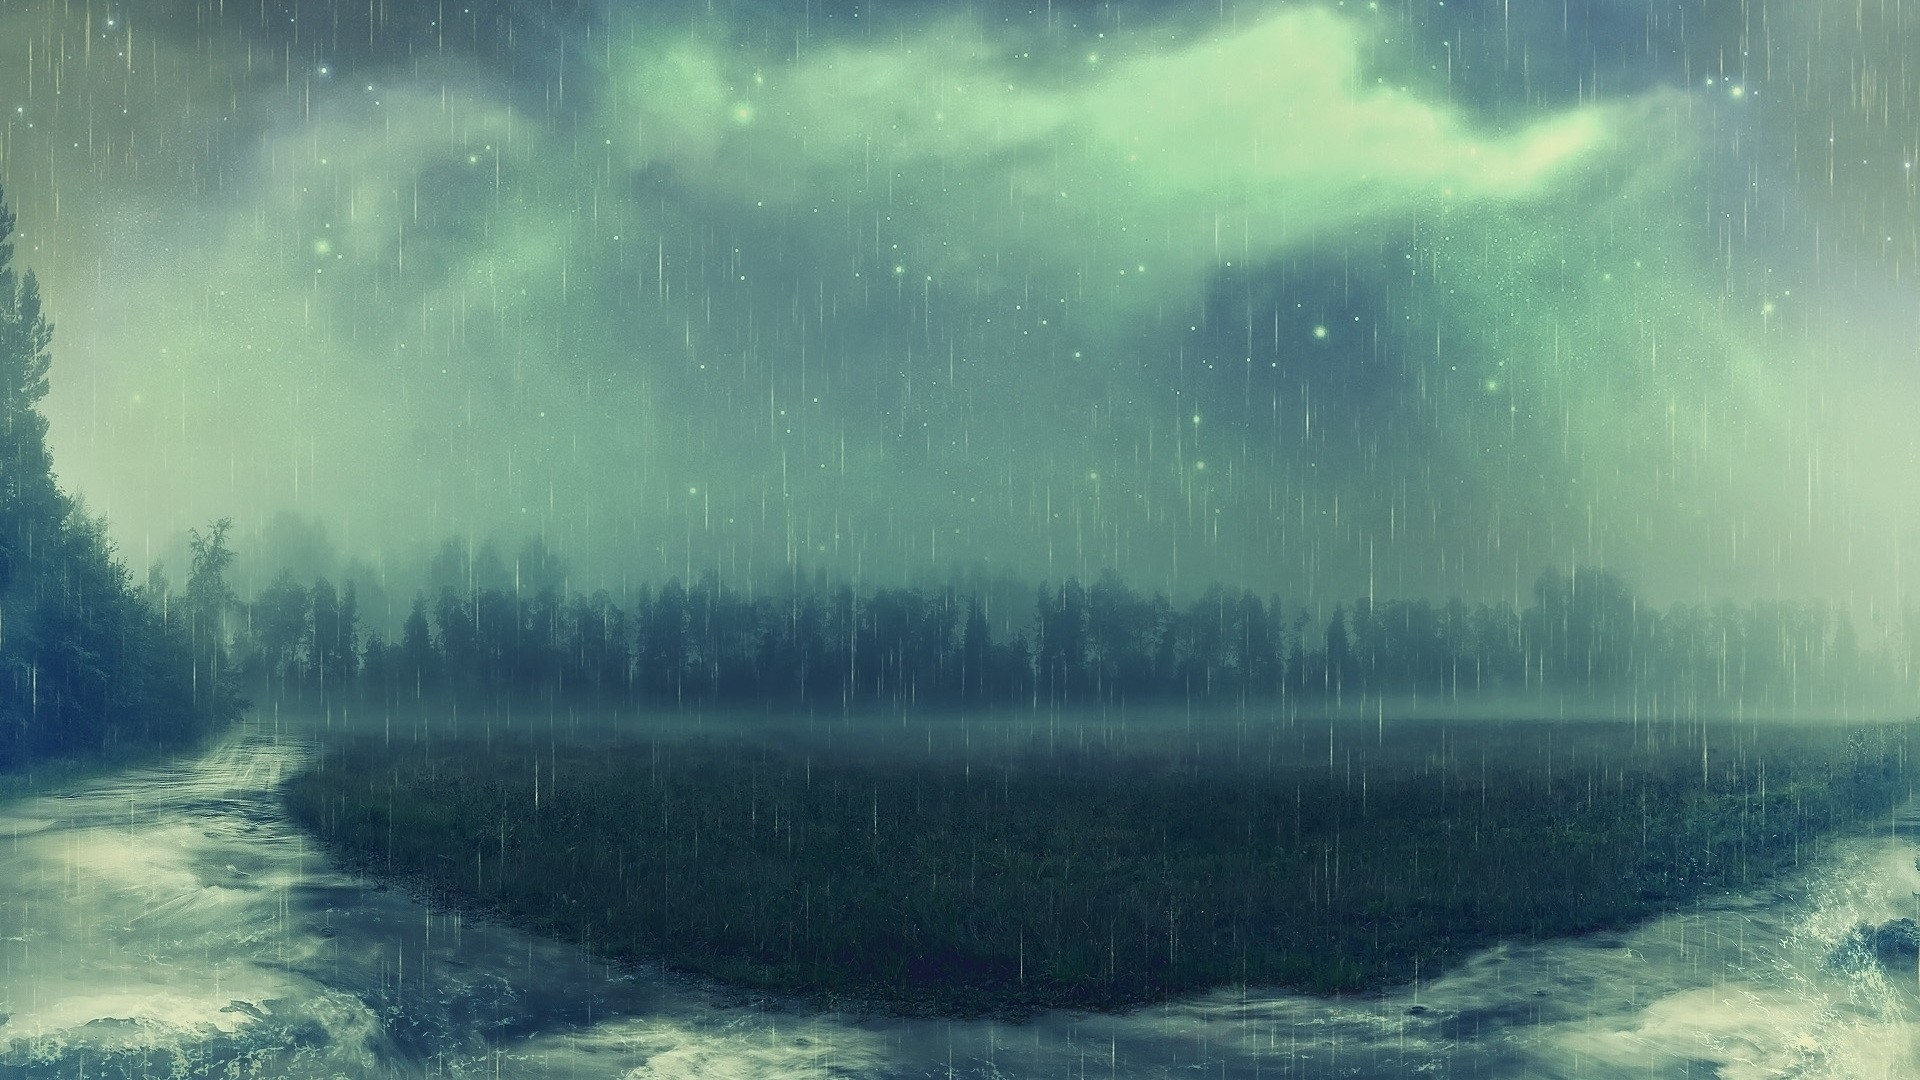 Rain Art desktop wallpaper hd